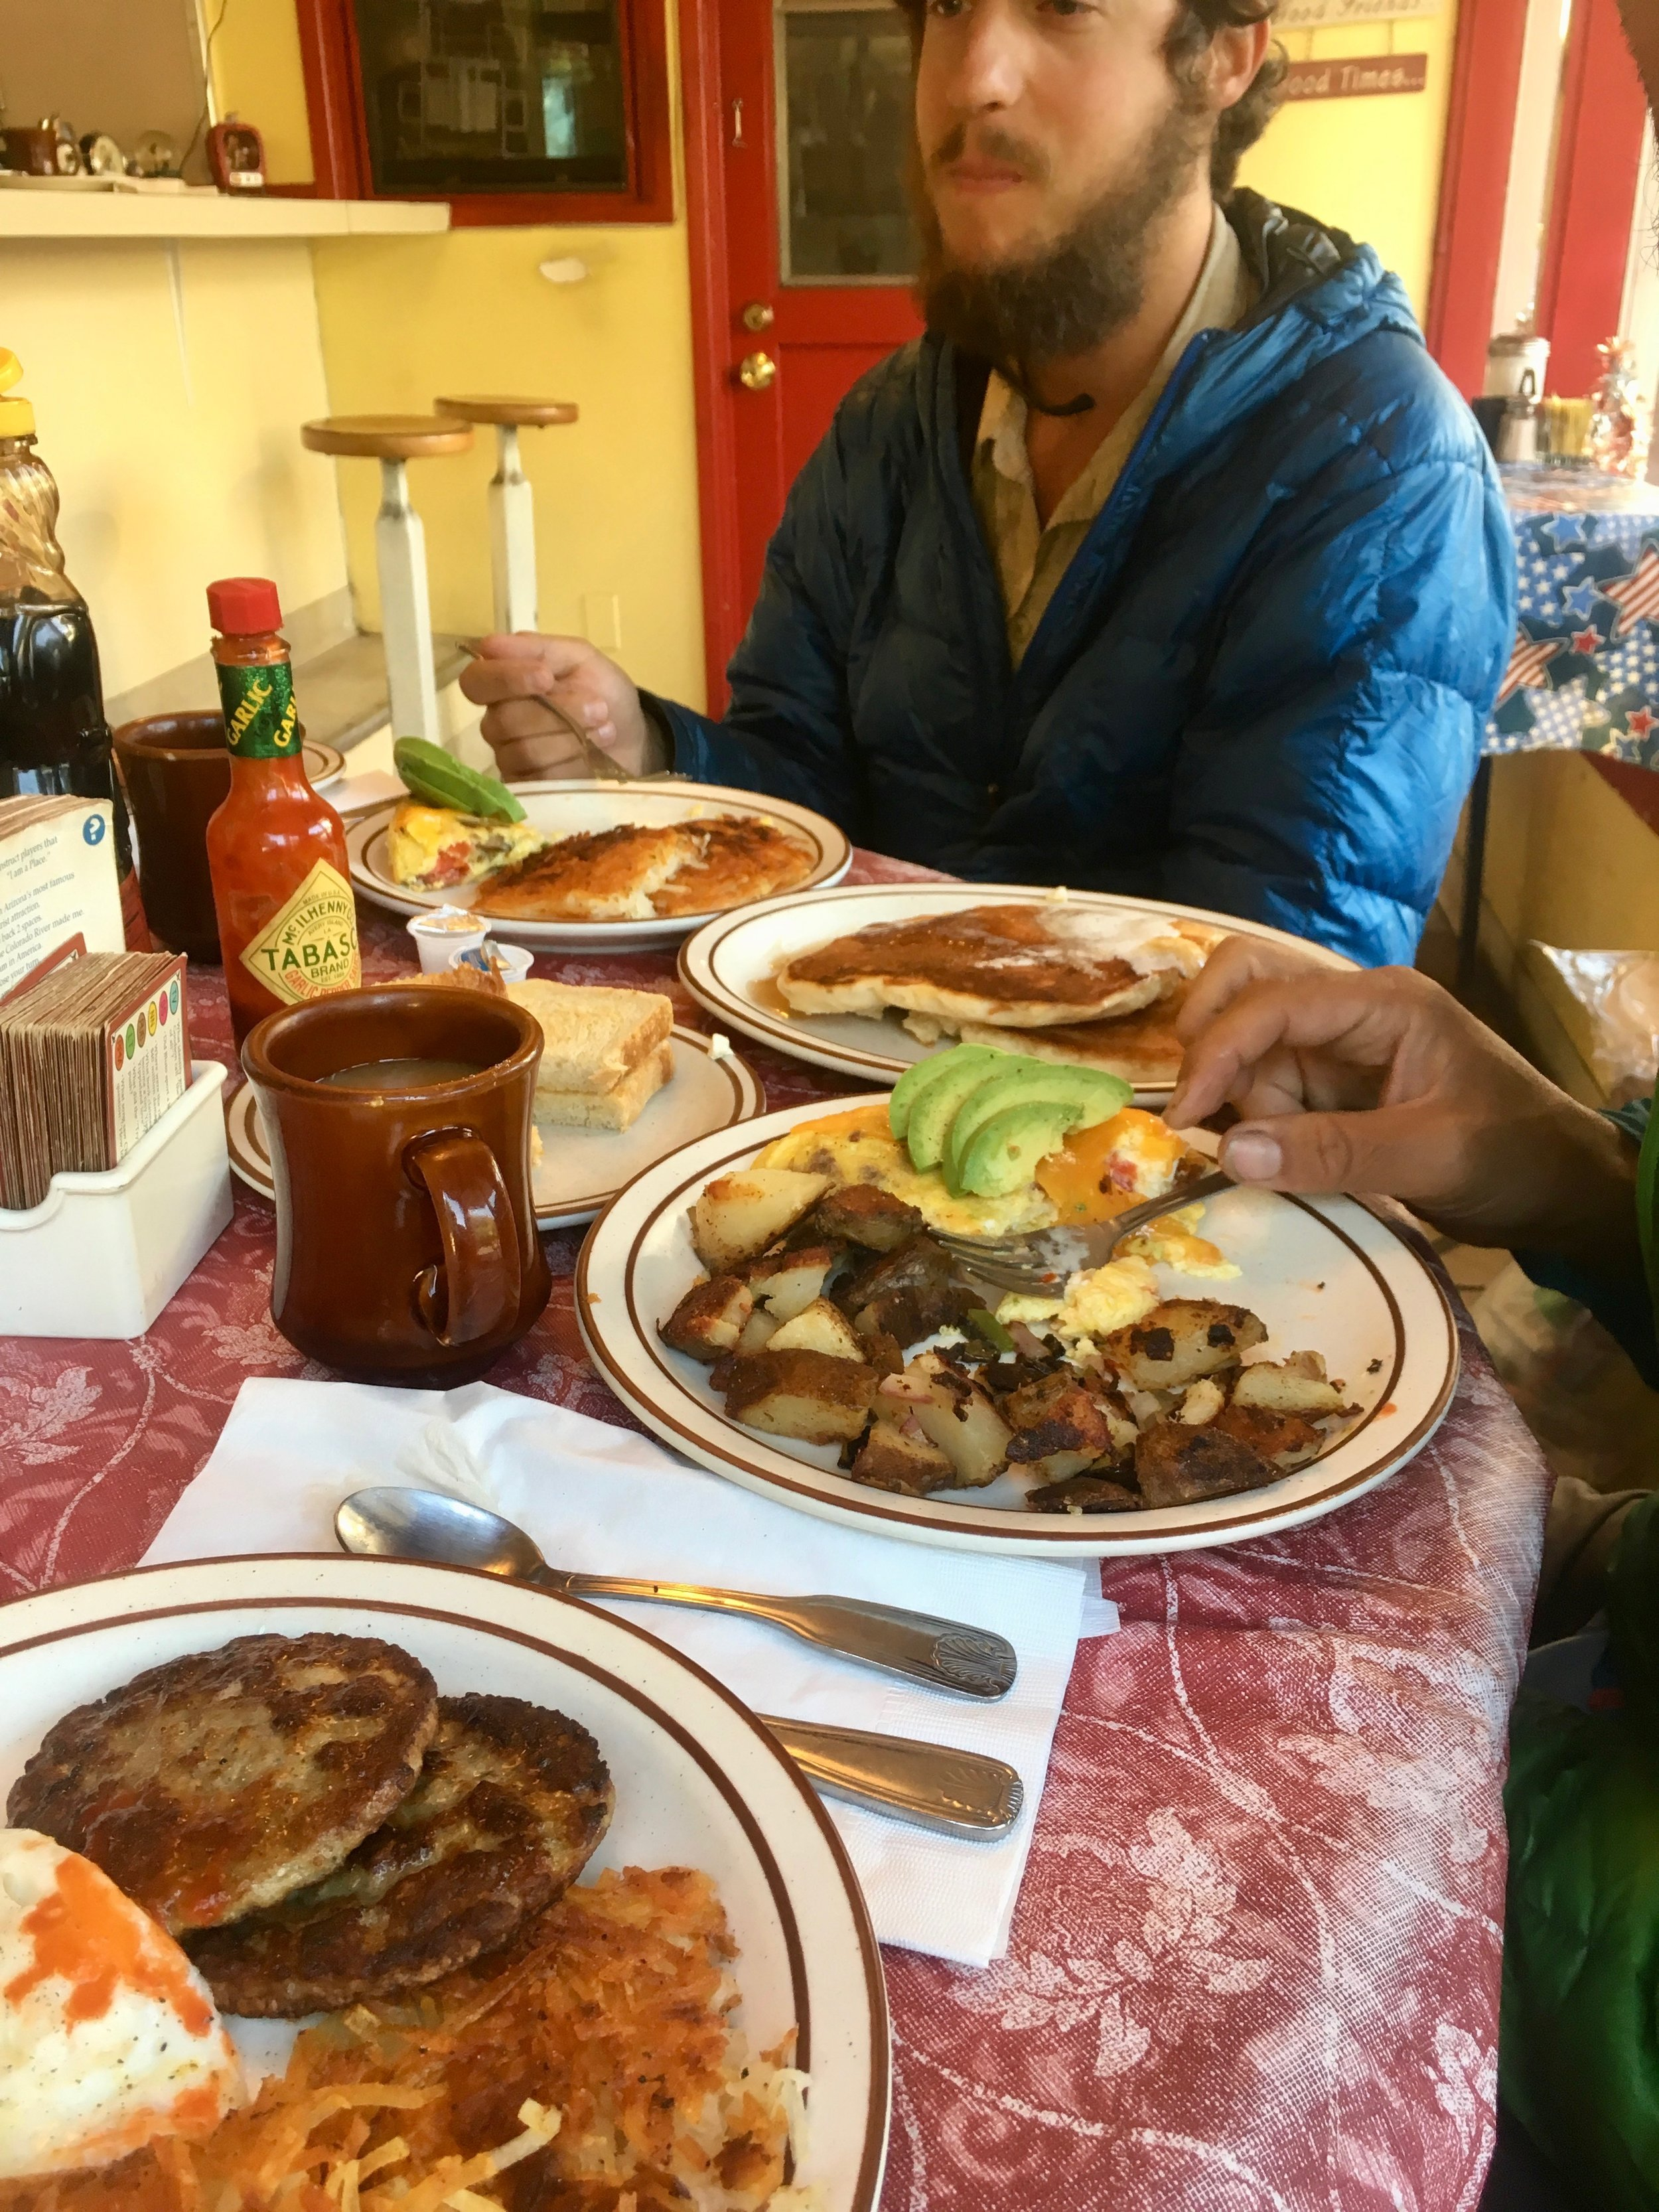 Breakfast in Seiad Valley, CA. The climb out of this town is insane, so it's good to fuel up here. They have a 5lb pancake challenge for anyone interested. Not for the faint of heart.